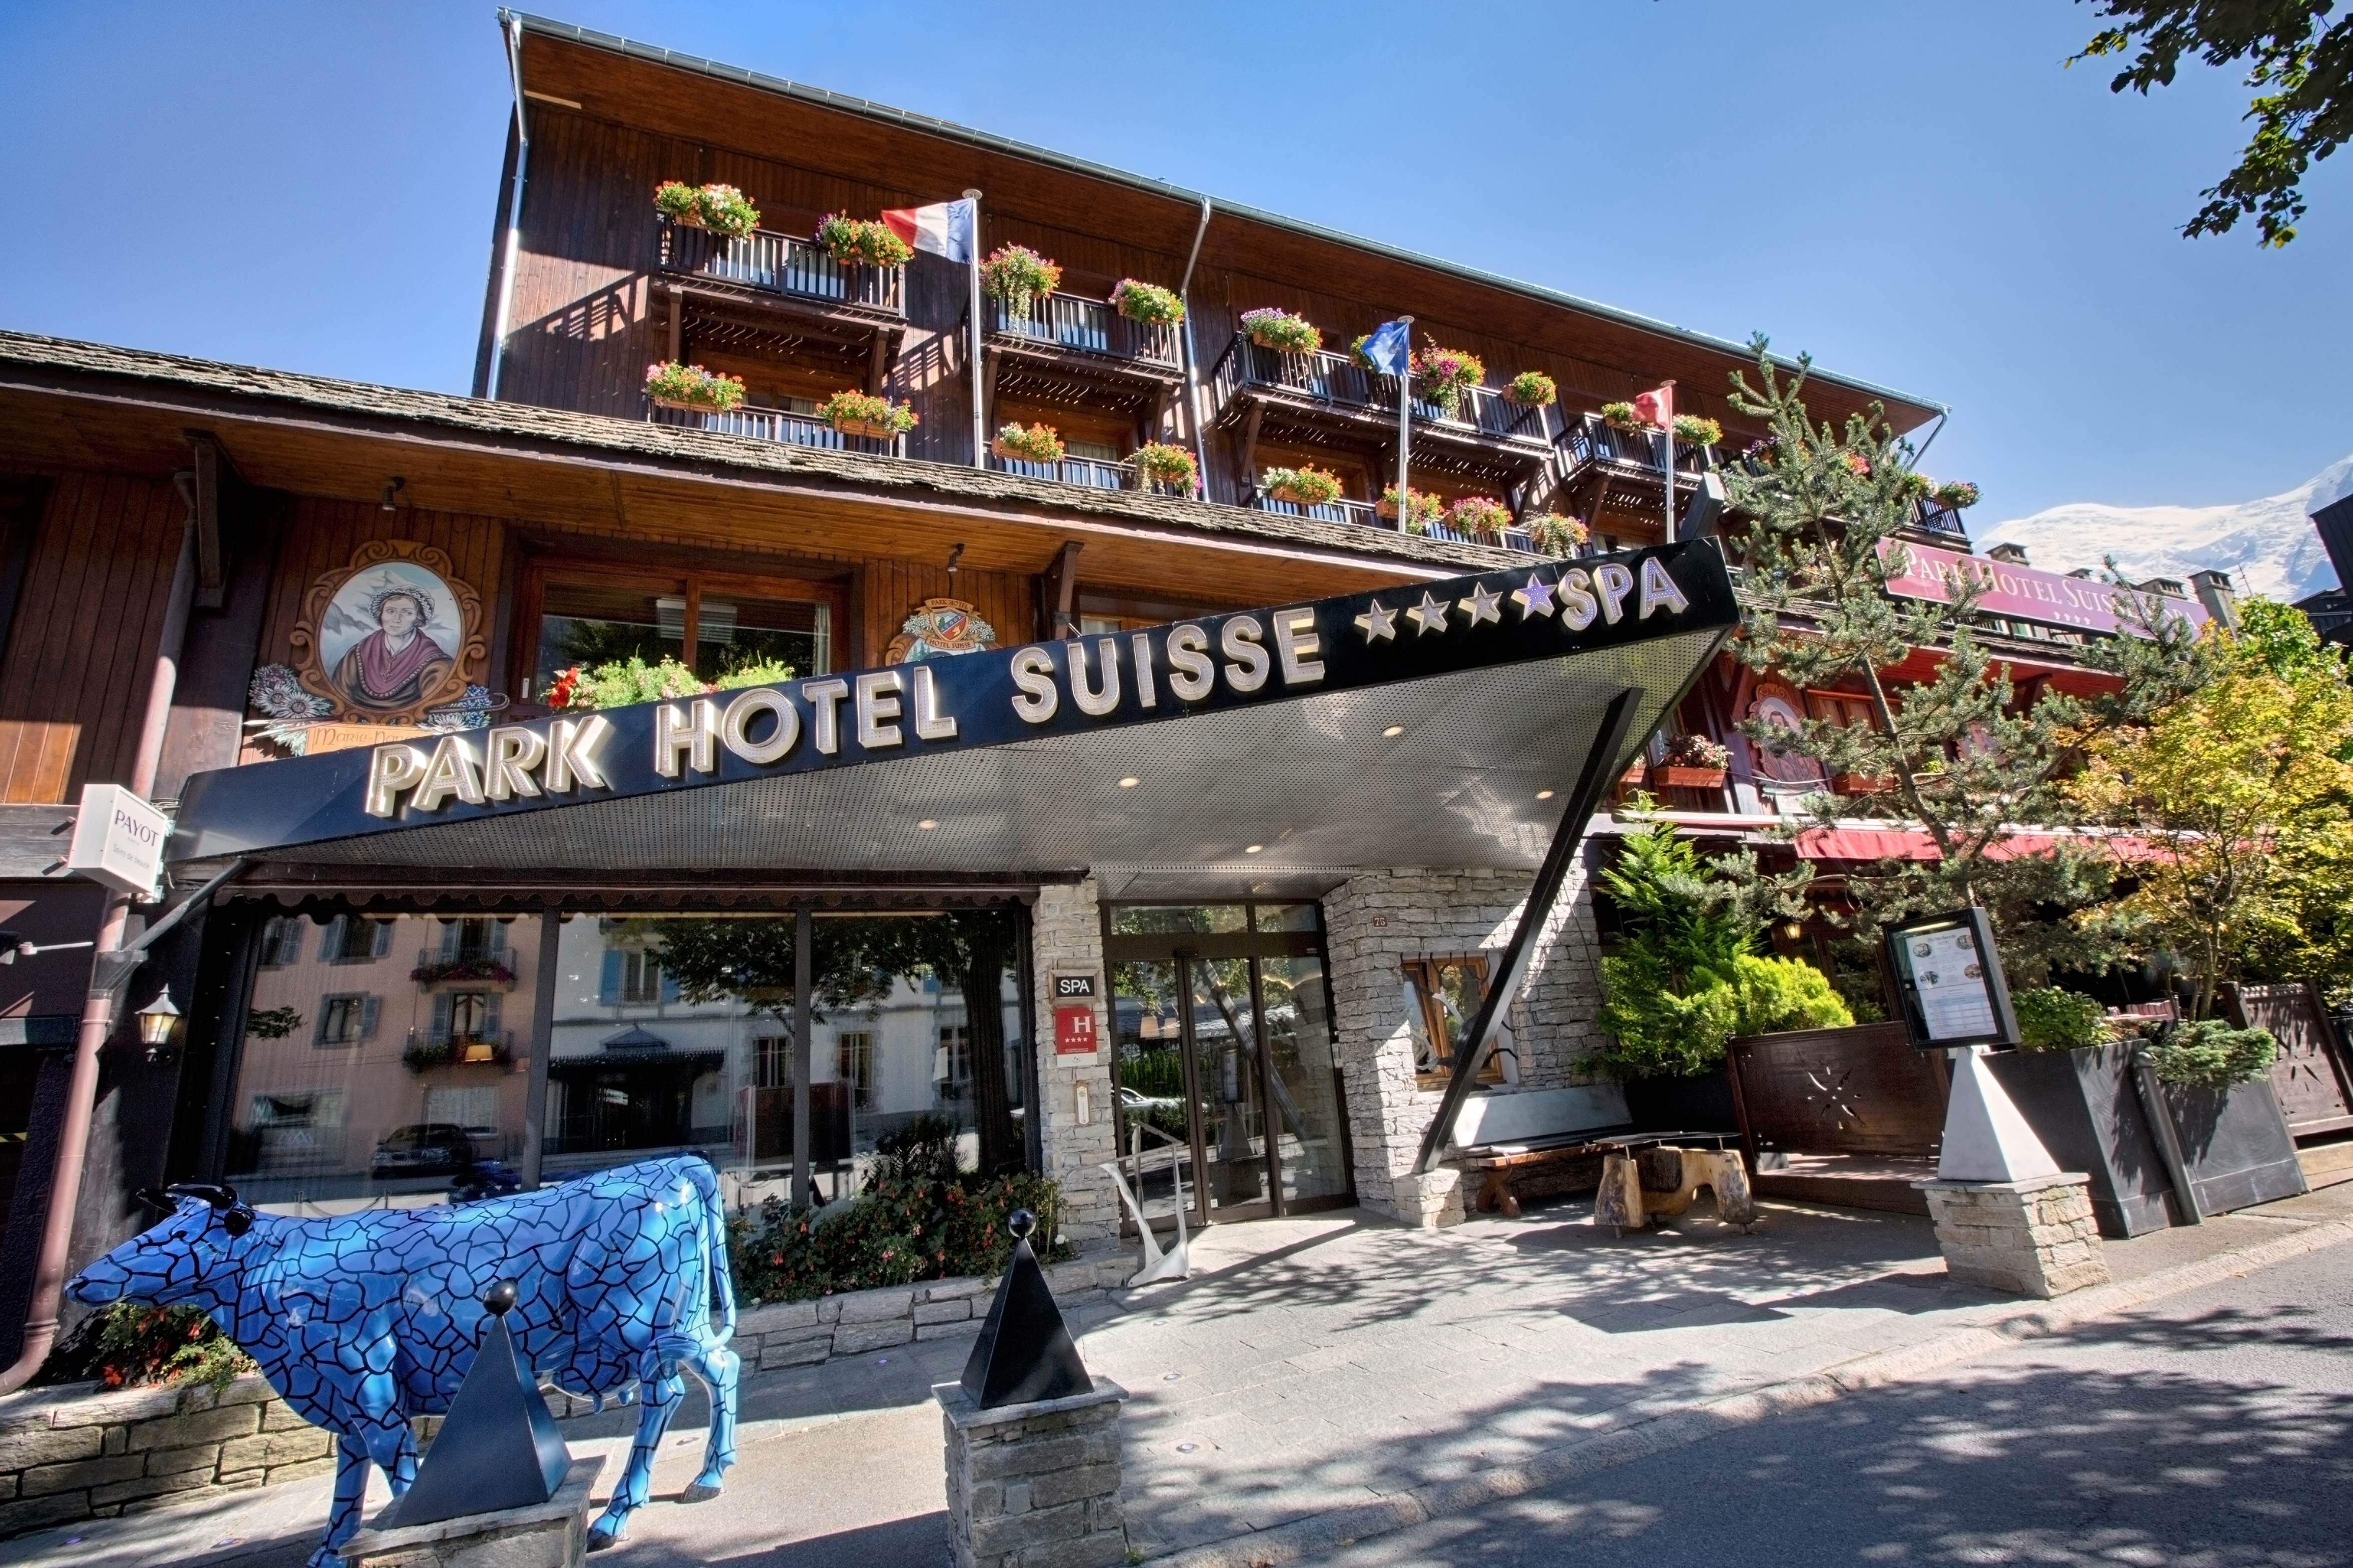 Park h tel suisse spa 4 star hotel in chamonix for Hotels chamonix